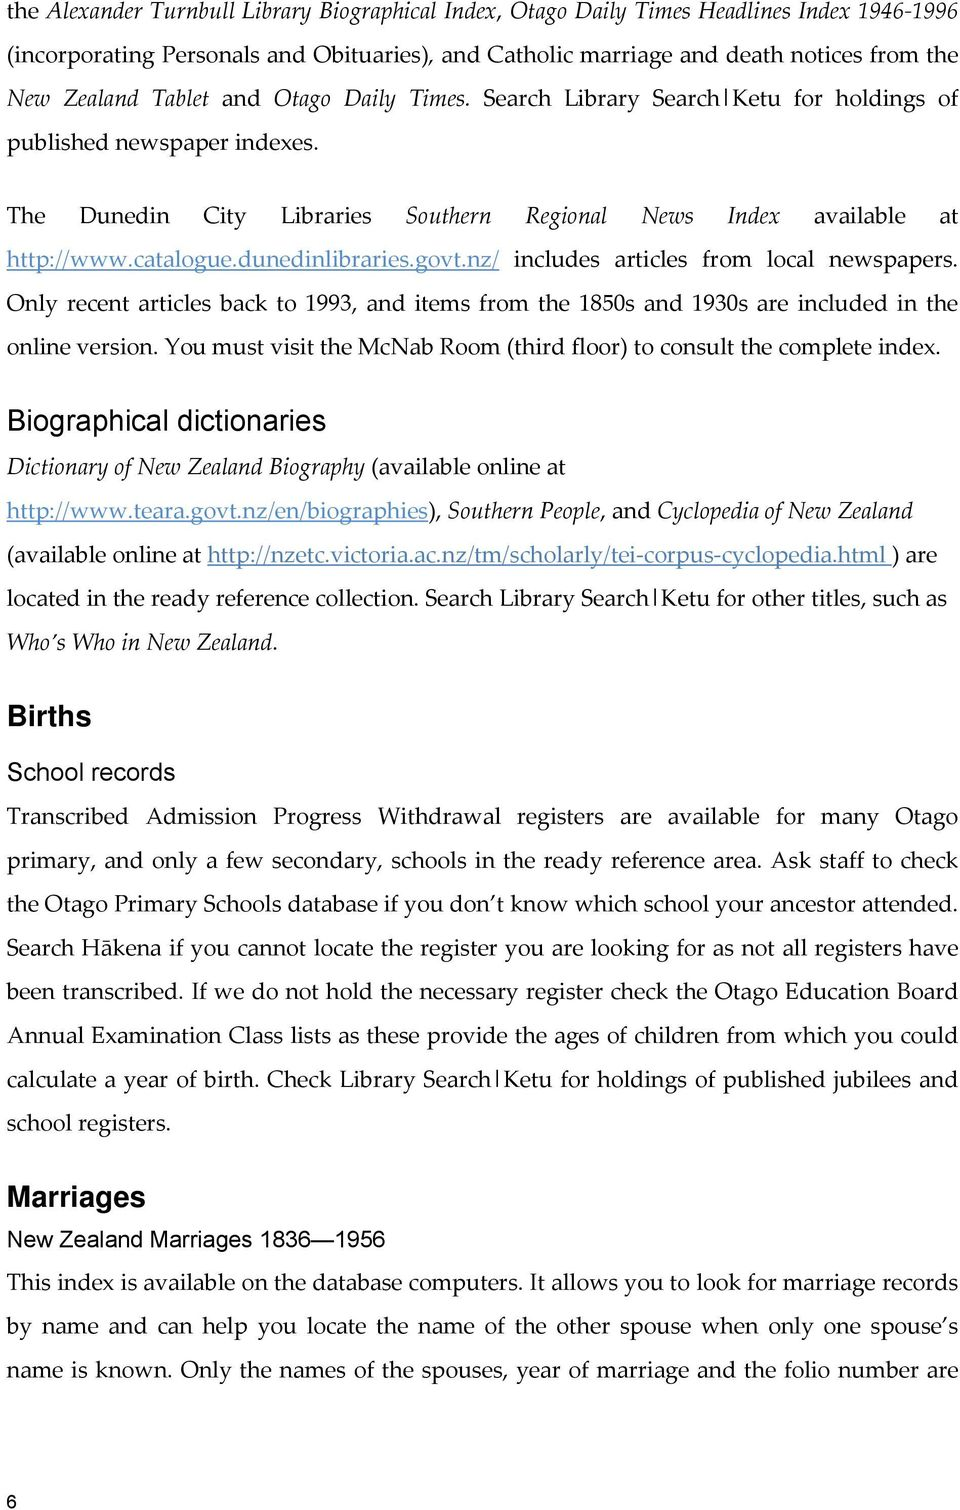 dunedinlibraries.govt.nz/ includes articles from local newspapers. Only recent articles back to 1993, and items from the 1850s and 1930s are included in the online version.